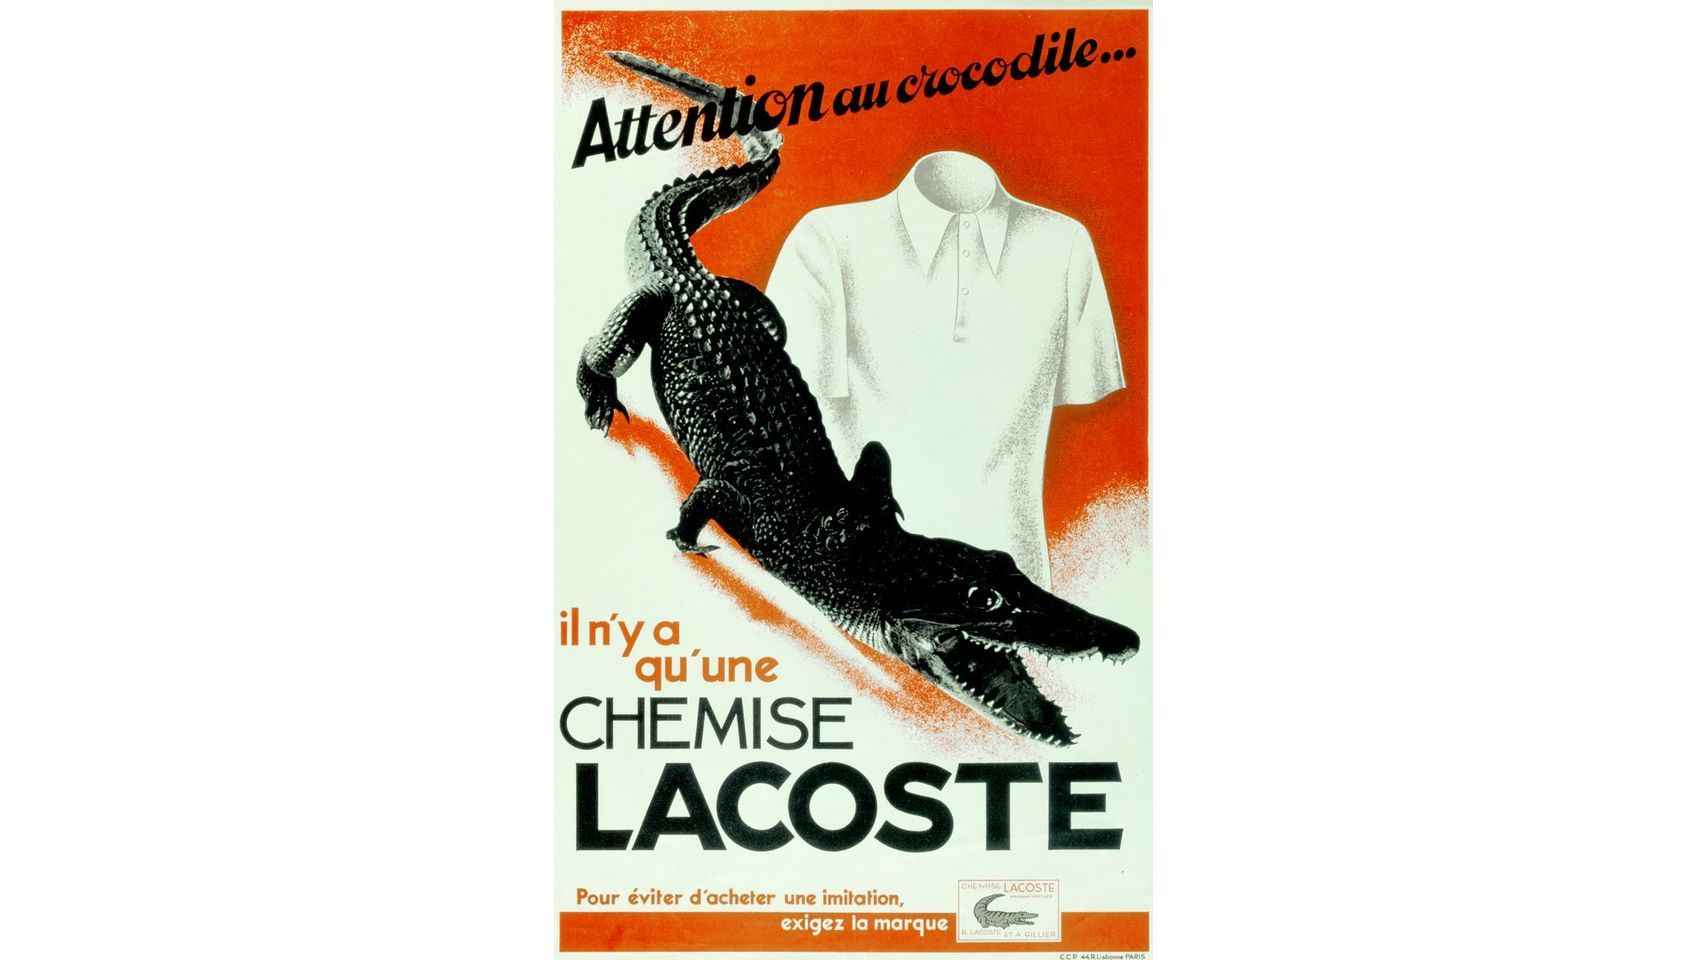 Publicidad Lacoste: Attention au crocodile.